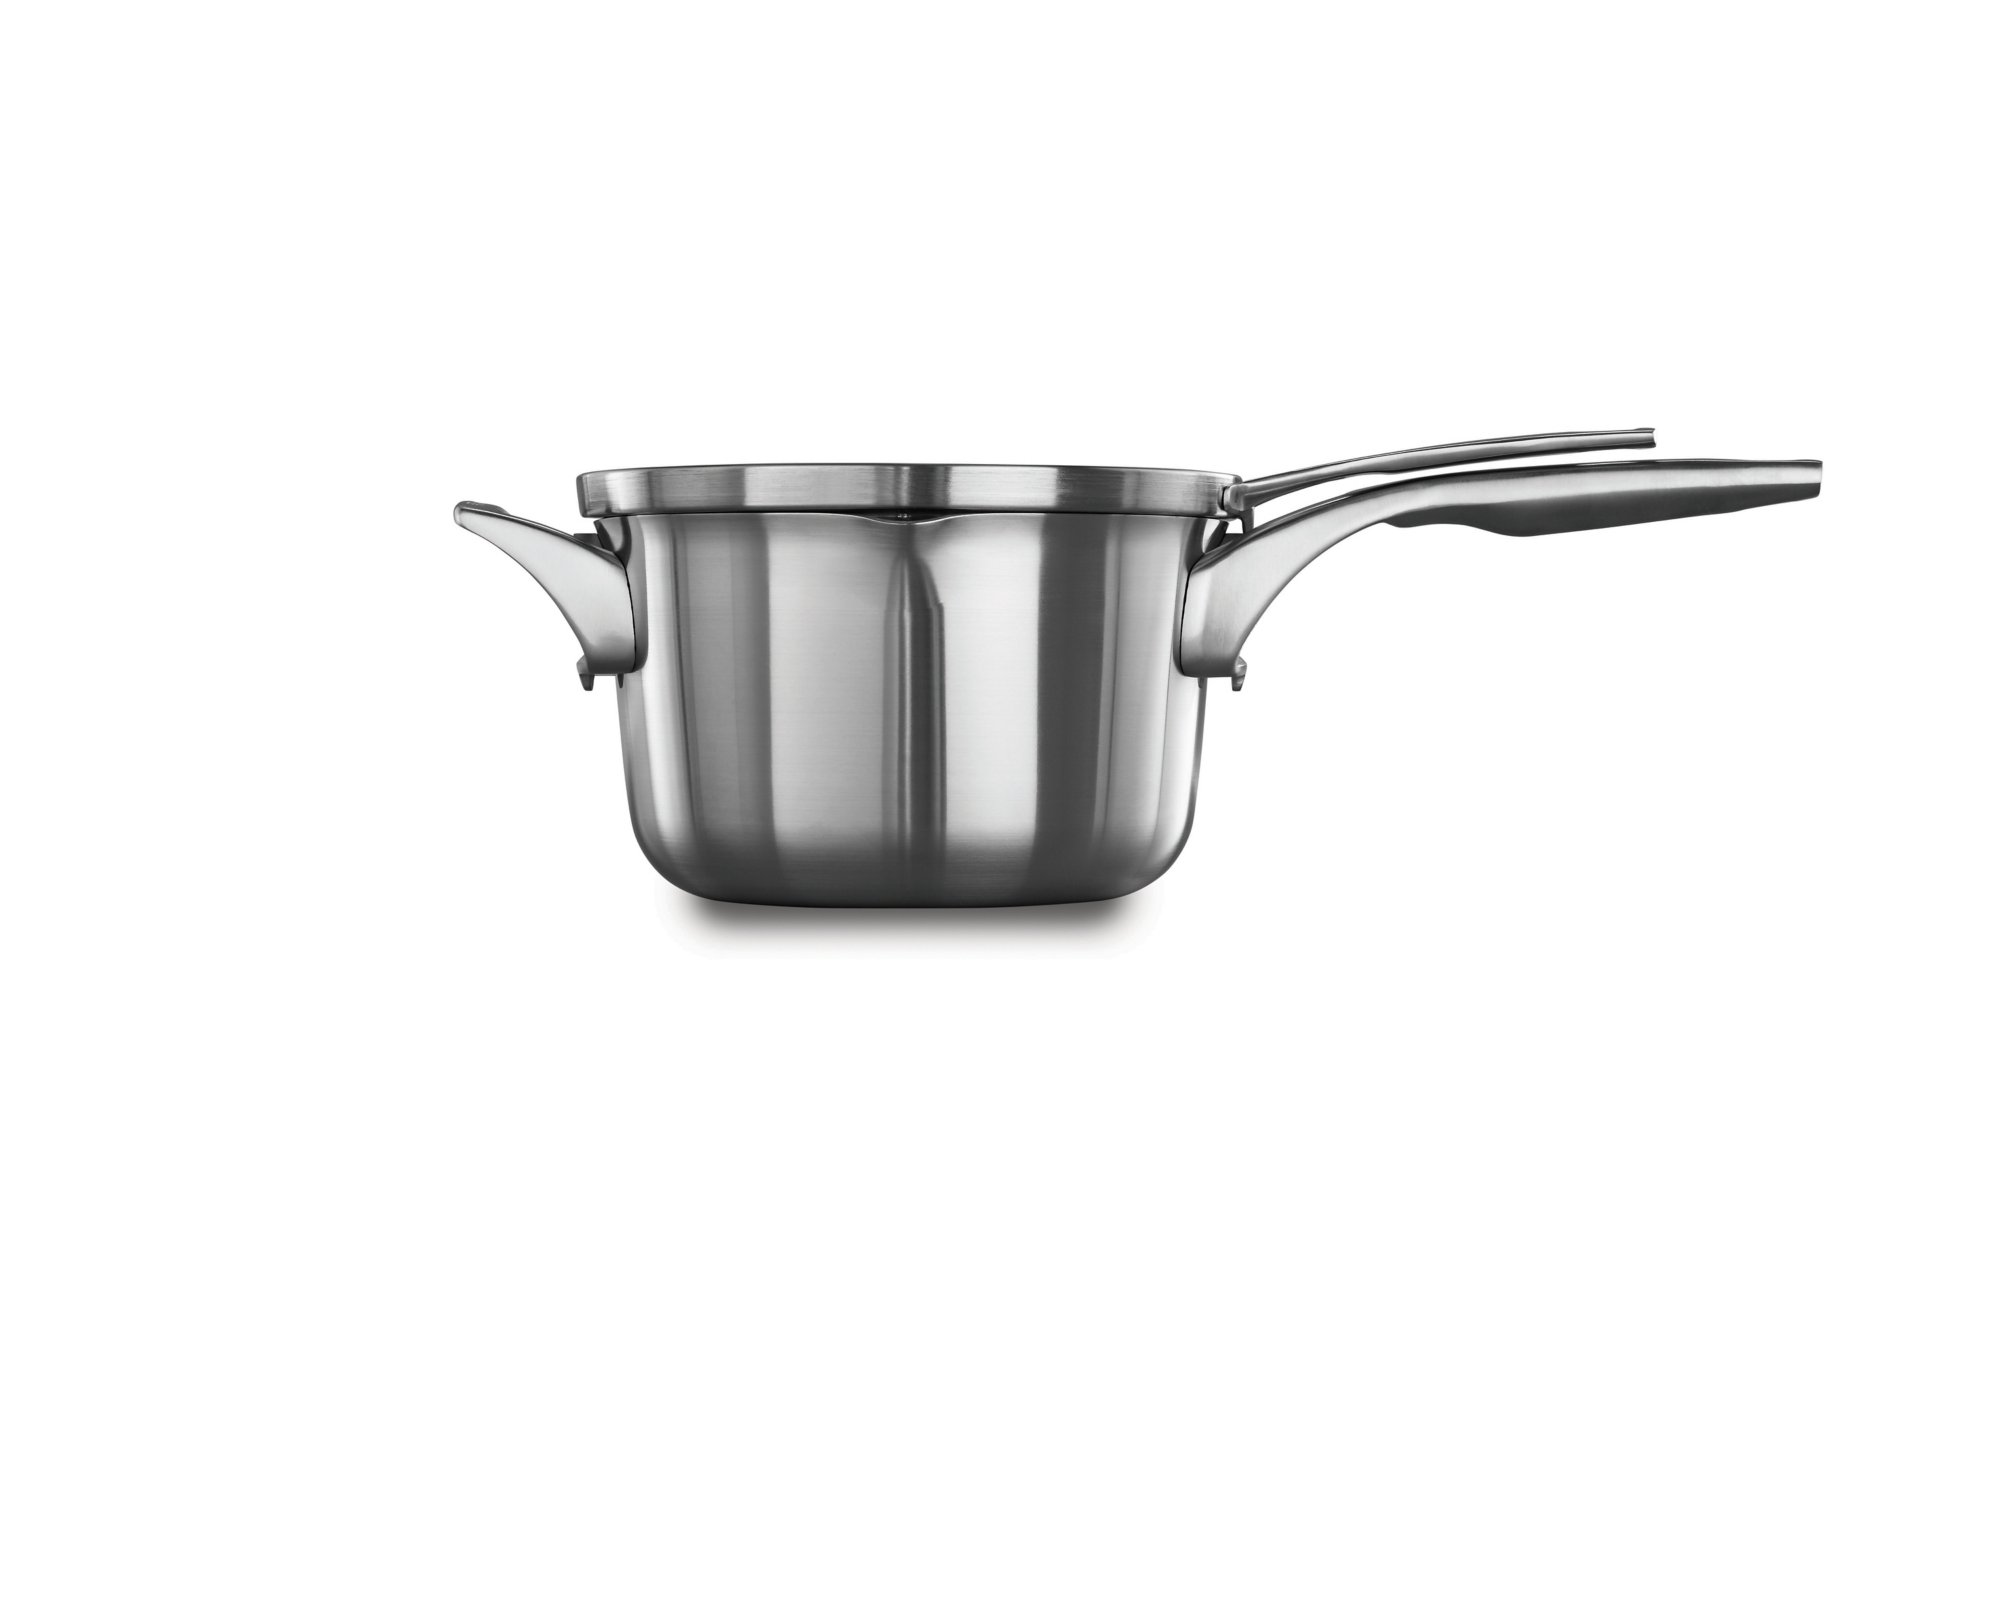 Calphalon Premier™ Space Saving Stainless Steel 3.5 qt. Pour & Strain Sauce Pan